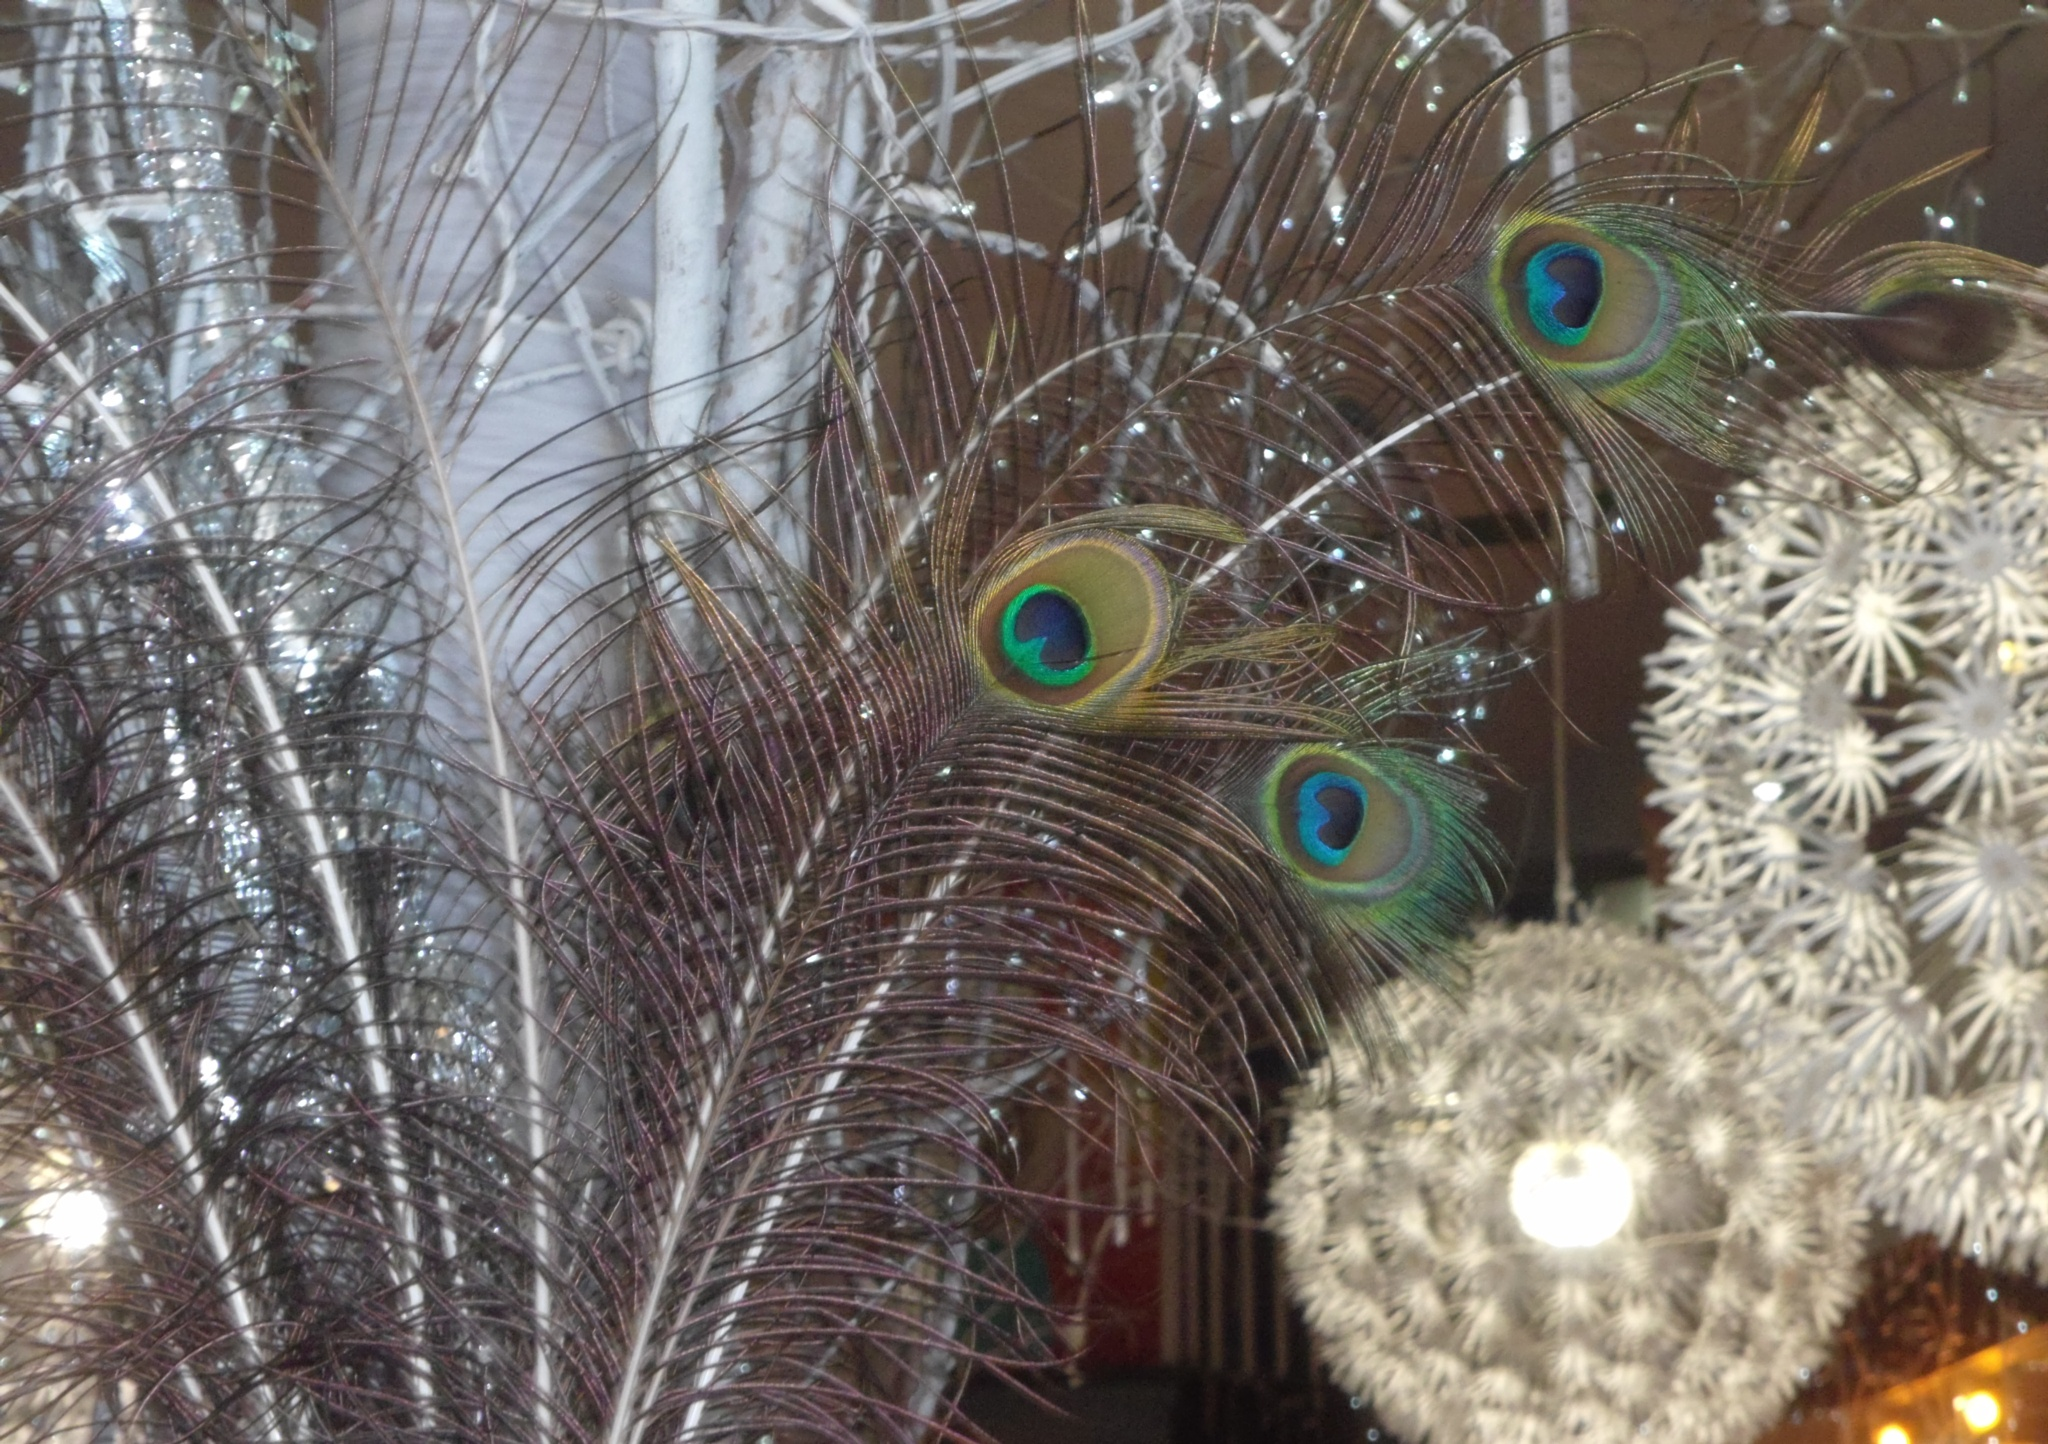 Peacock Feathers by beverly.cialone